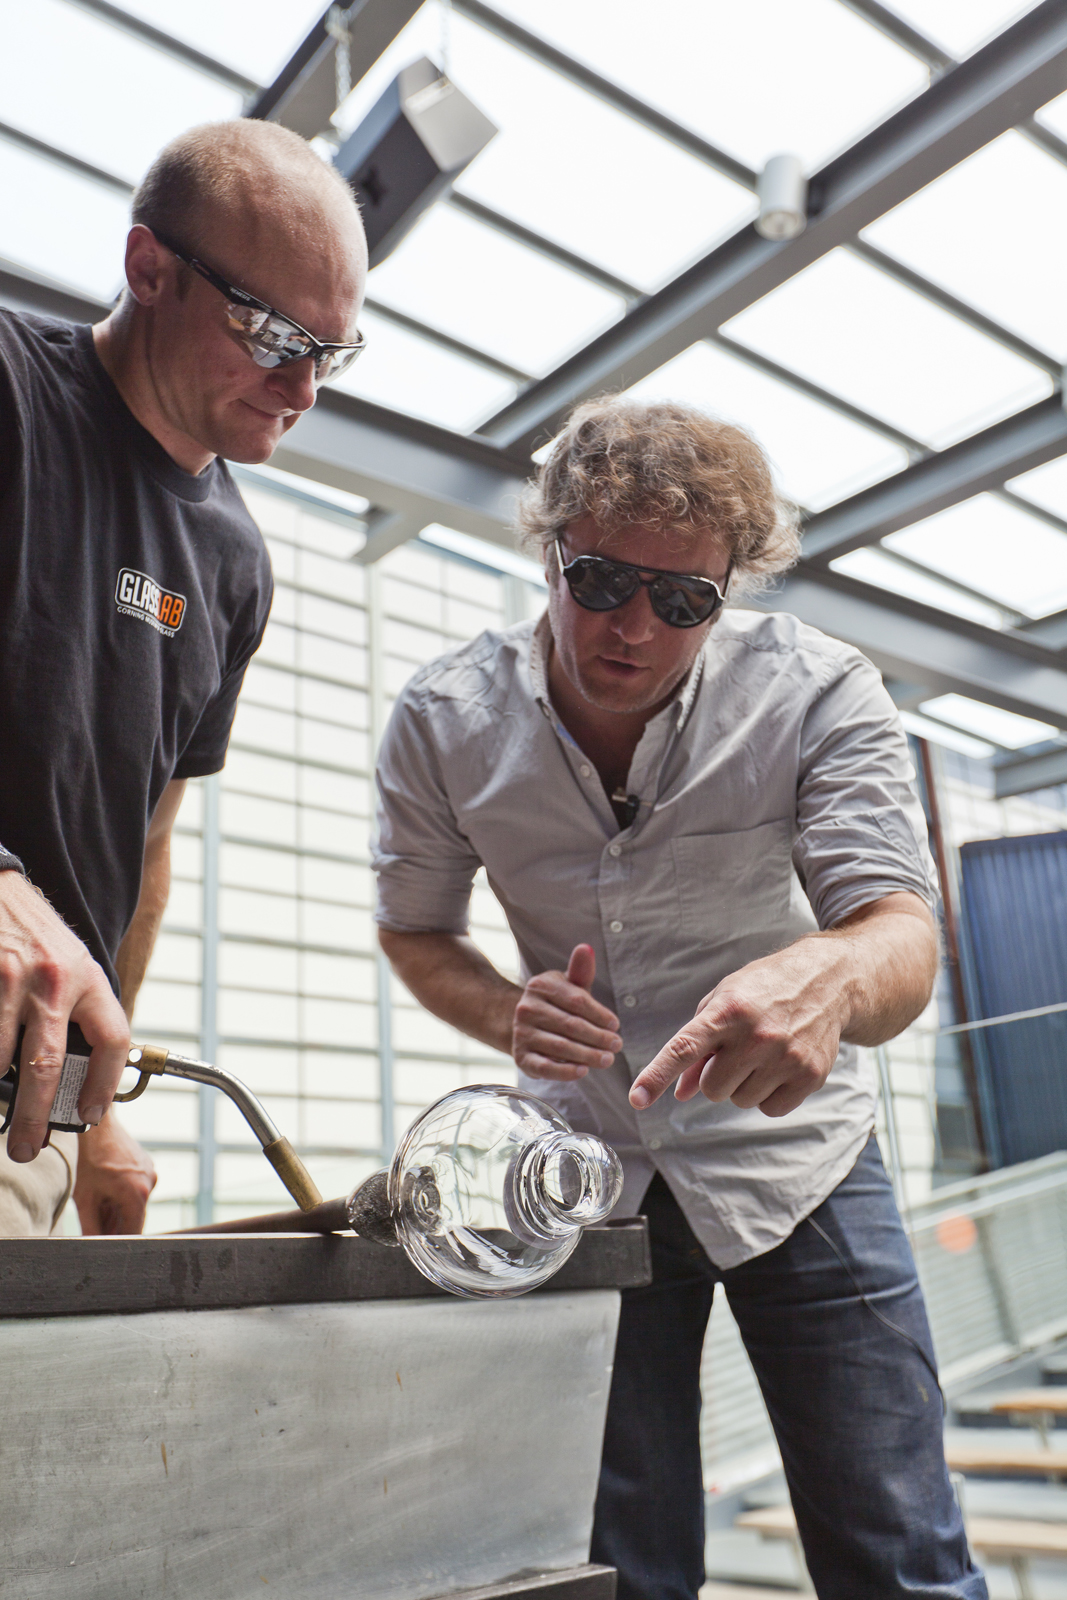 Designer Jason Miller at GlassLab in Corning, June 2012